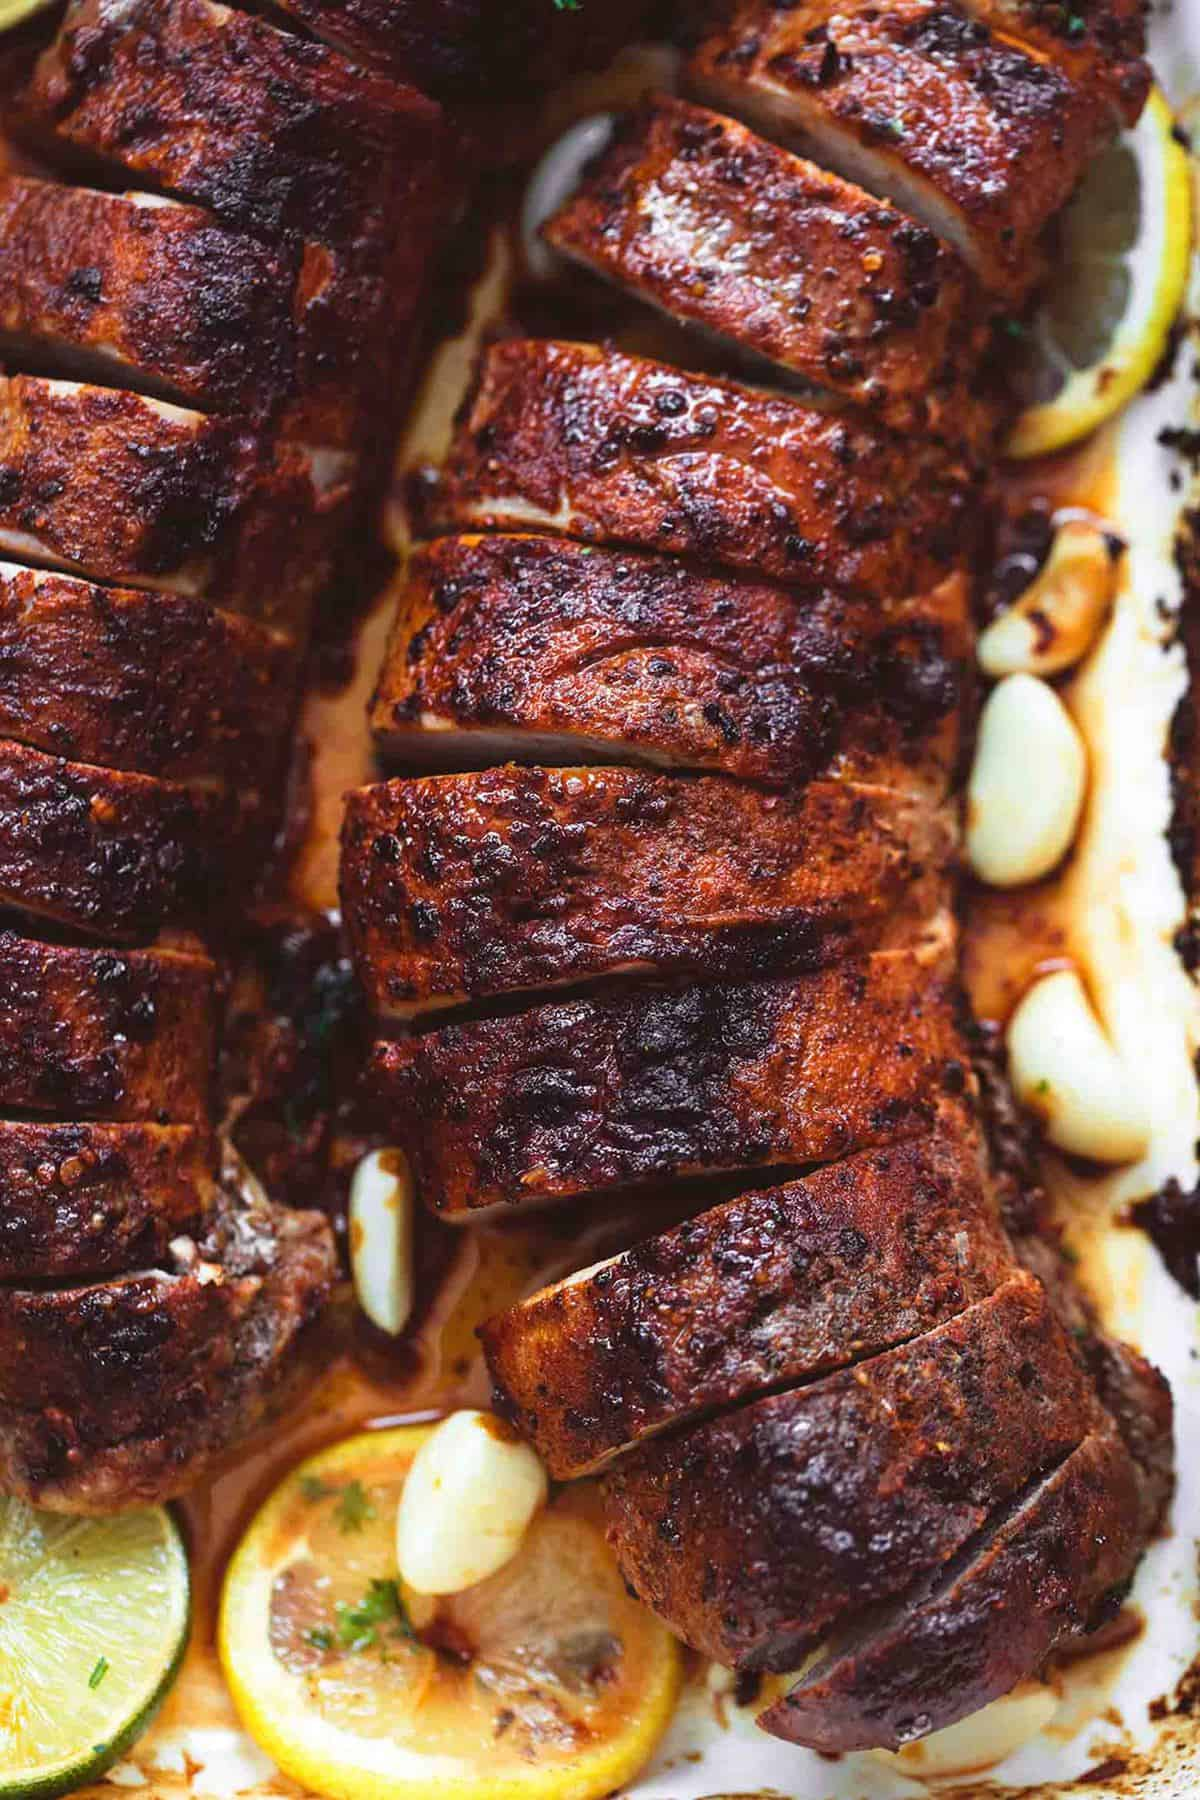 How to bake bbq pork tenderloin in oven without foil